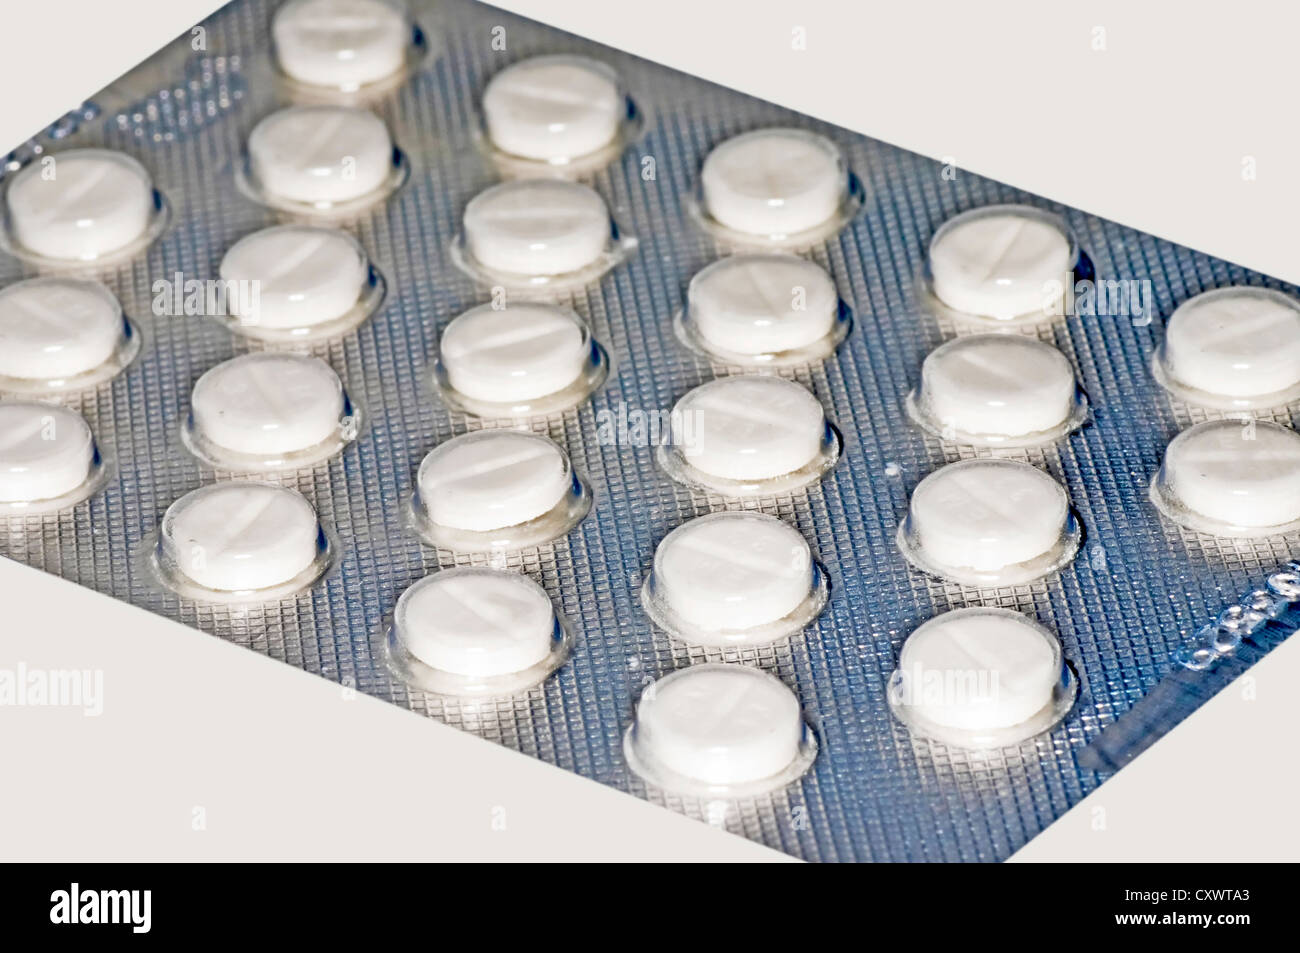 iodine pills - Stock Image